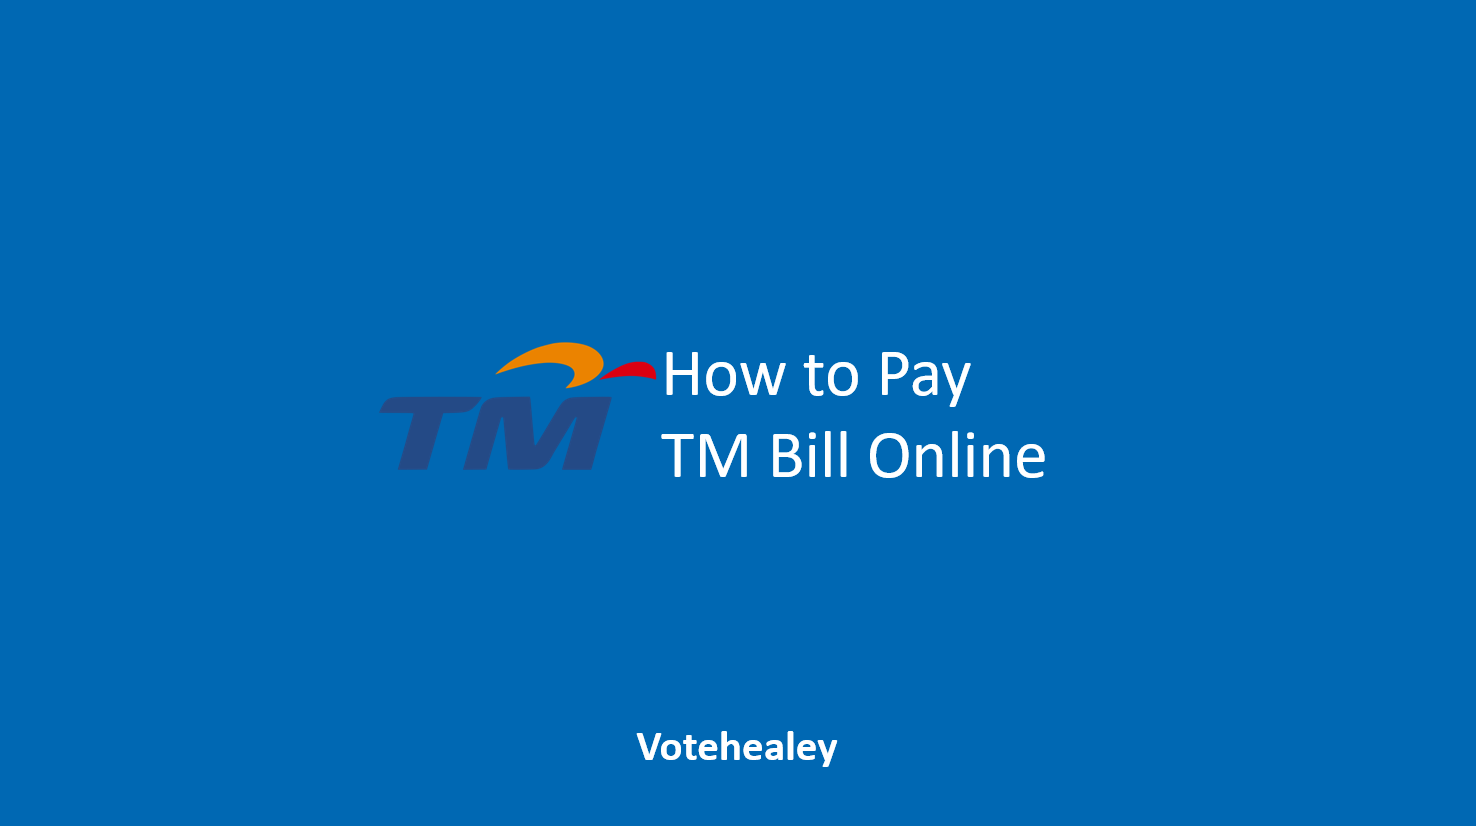 How to Pay TM Bill Online